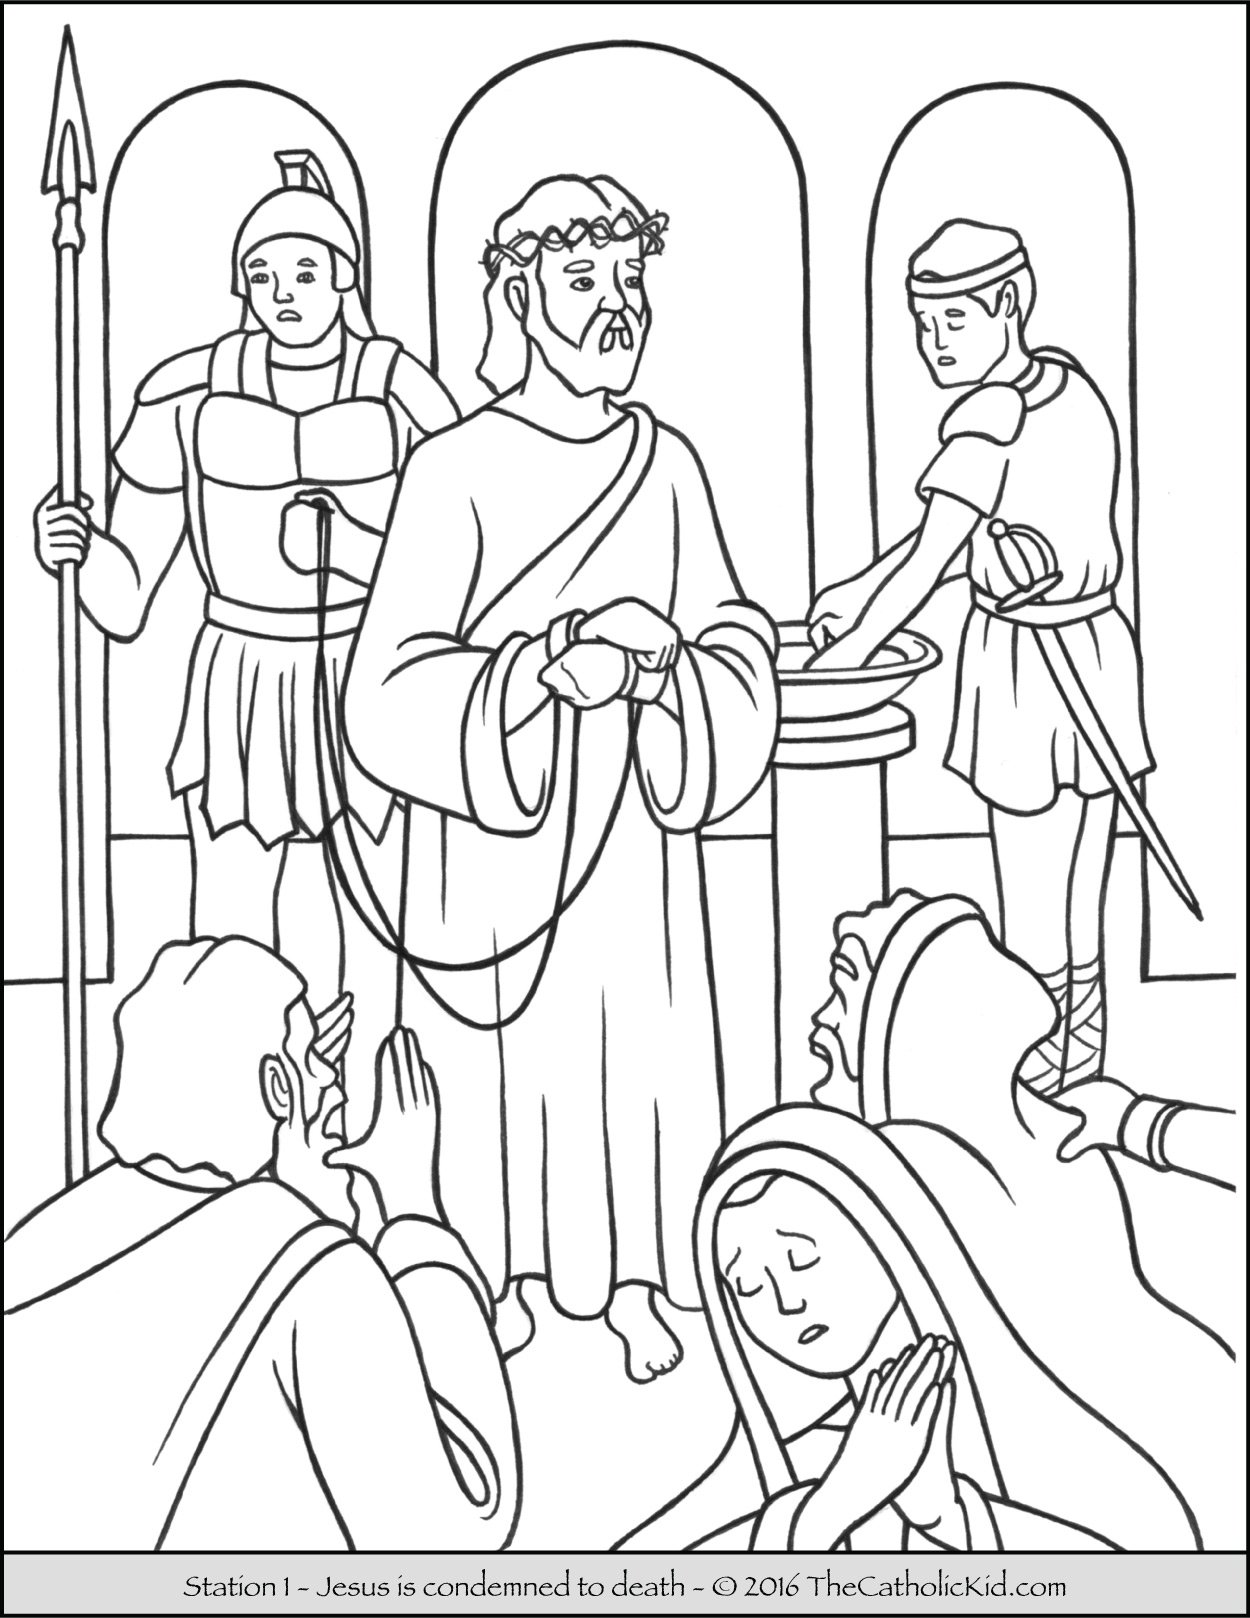 stations of the coloring catholic kid sign butterflies sheets draw value scale letter li coloring pages Sign Of The Cross Coloring Page